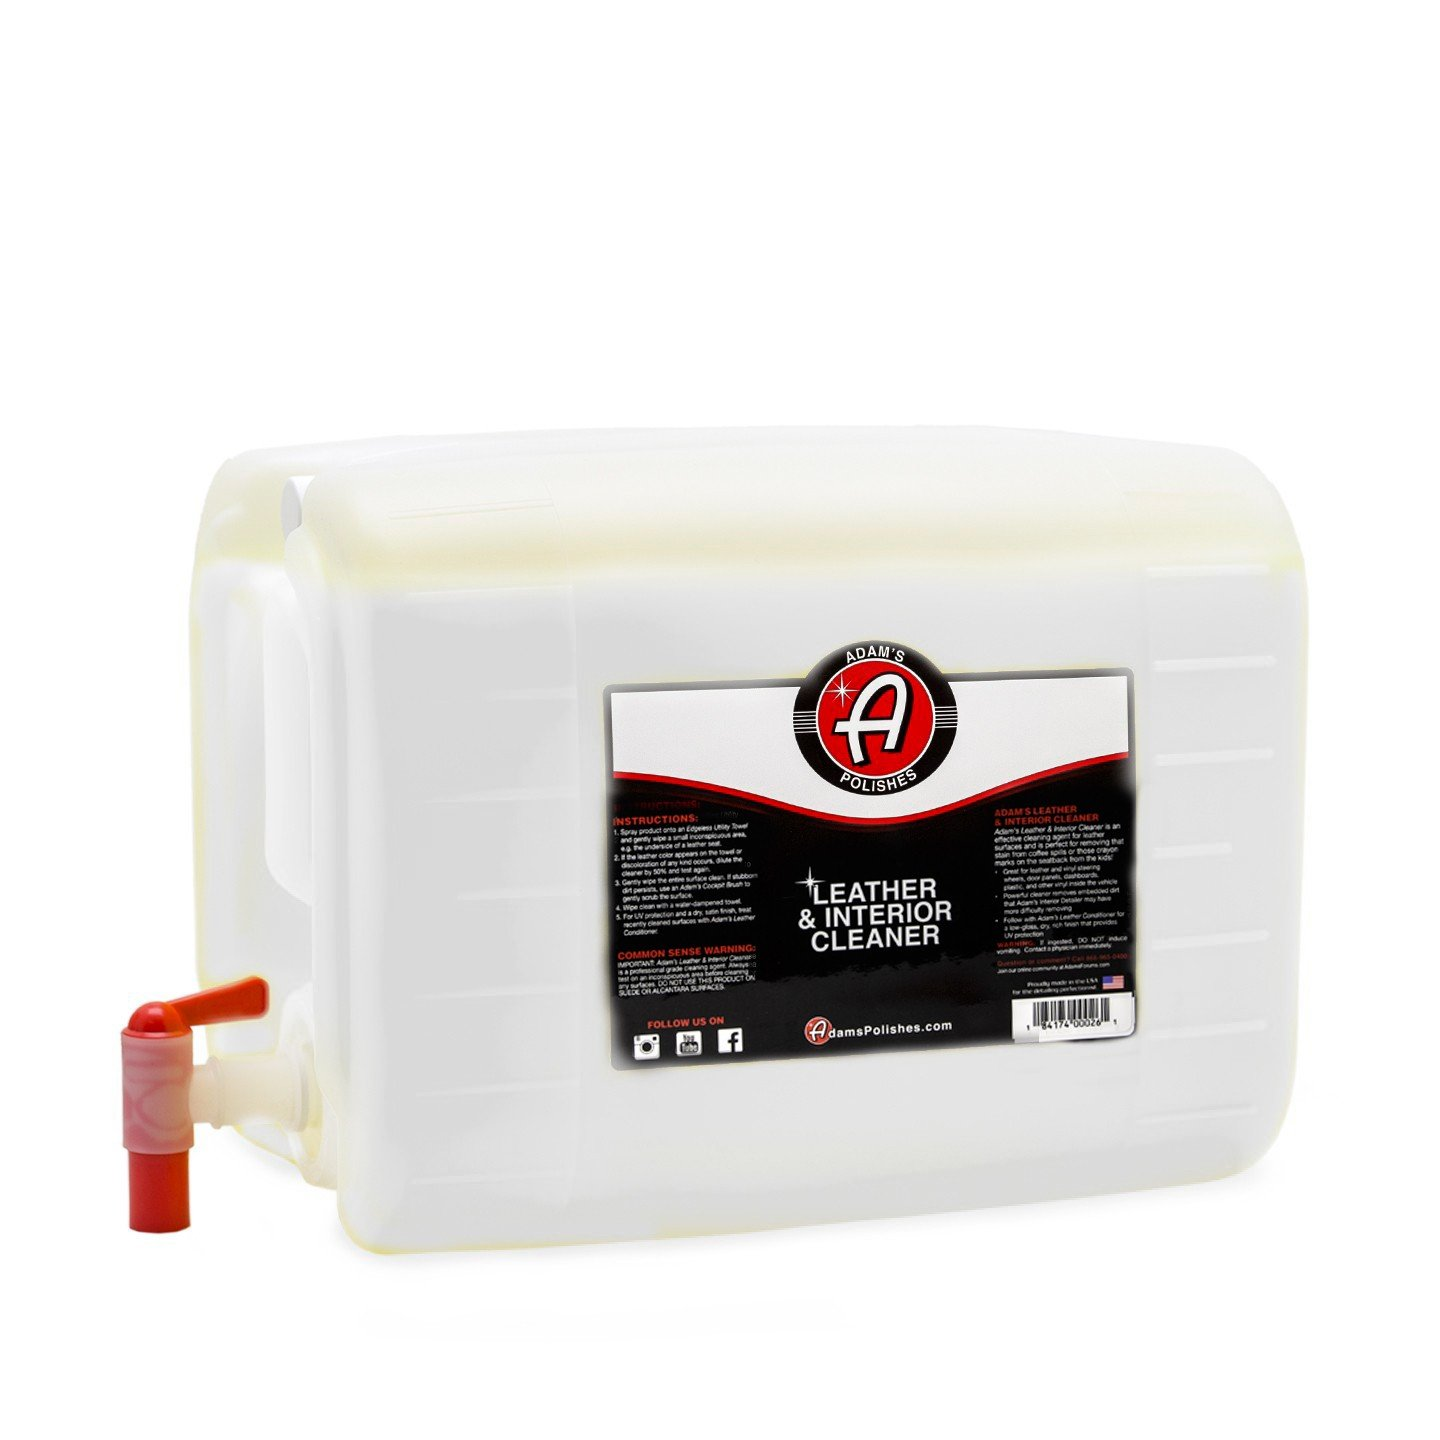 Adam's Leather & Interior Cleaner - Safely Deep Cleans All Leather Vinyl and Plastic Interior Surfaces - Gentle on Your Interior, Tough on Dirt (5 Gallon) by Adam's Polishes (Image #1)